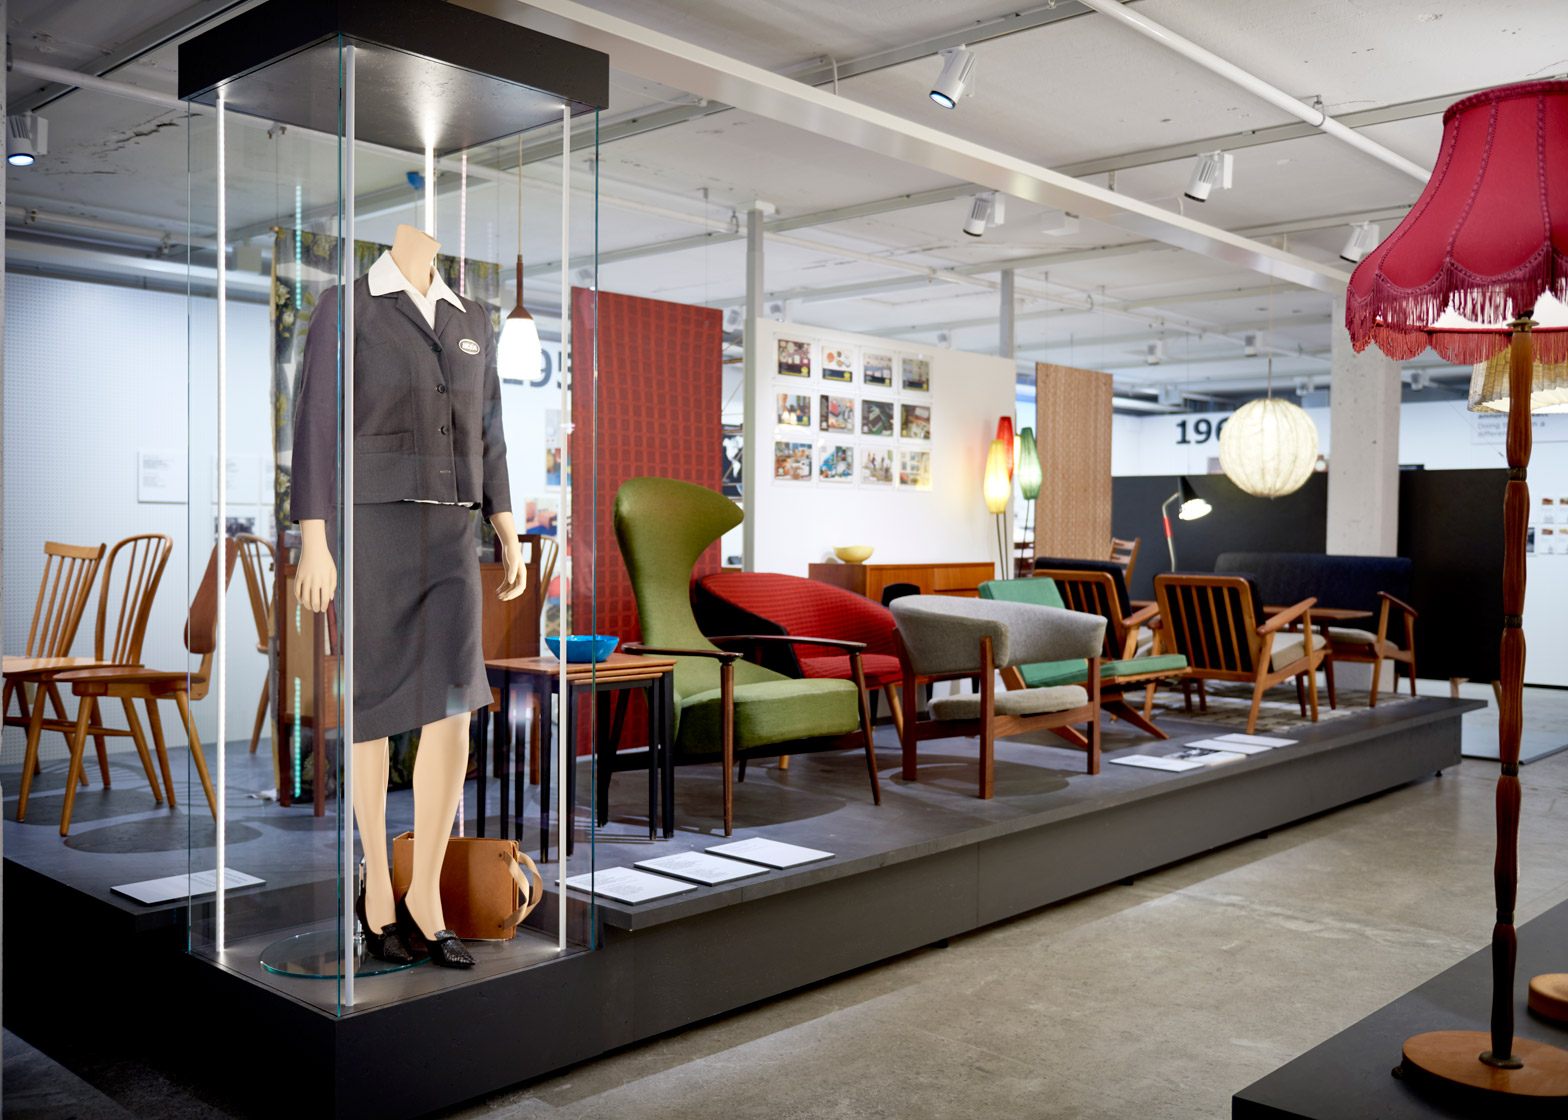 An Ikea museum will open in Sweden this month - Curbed - photo#9